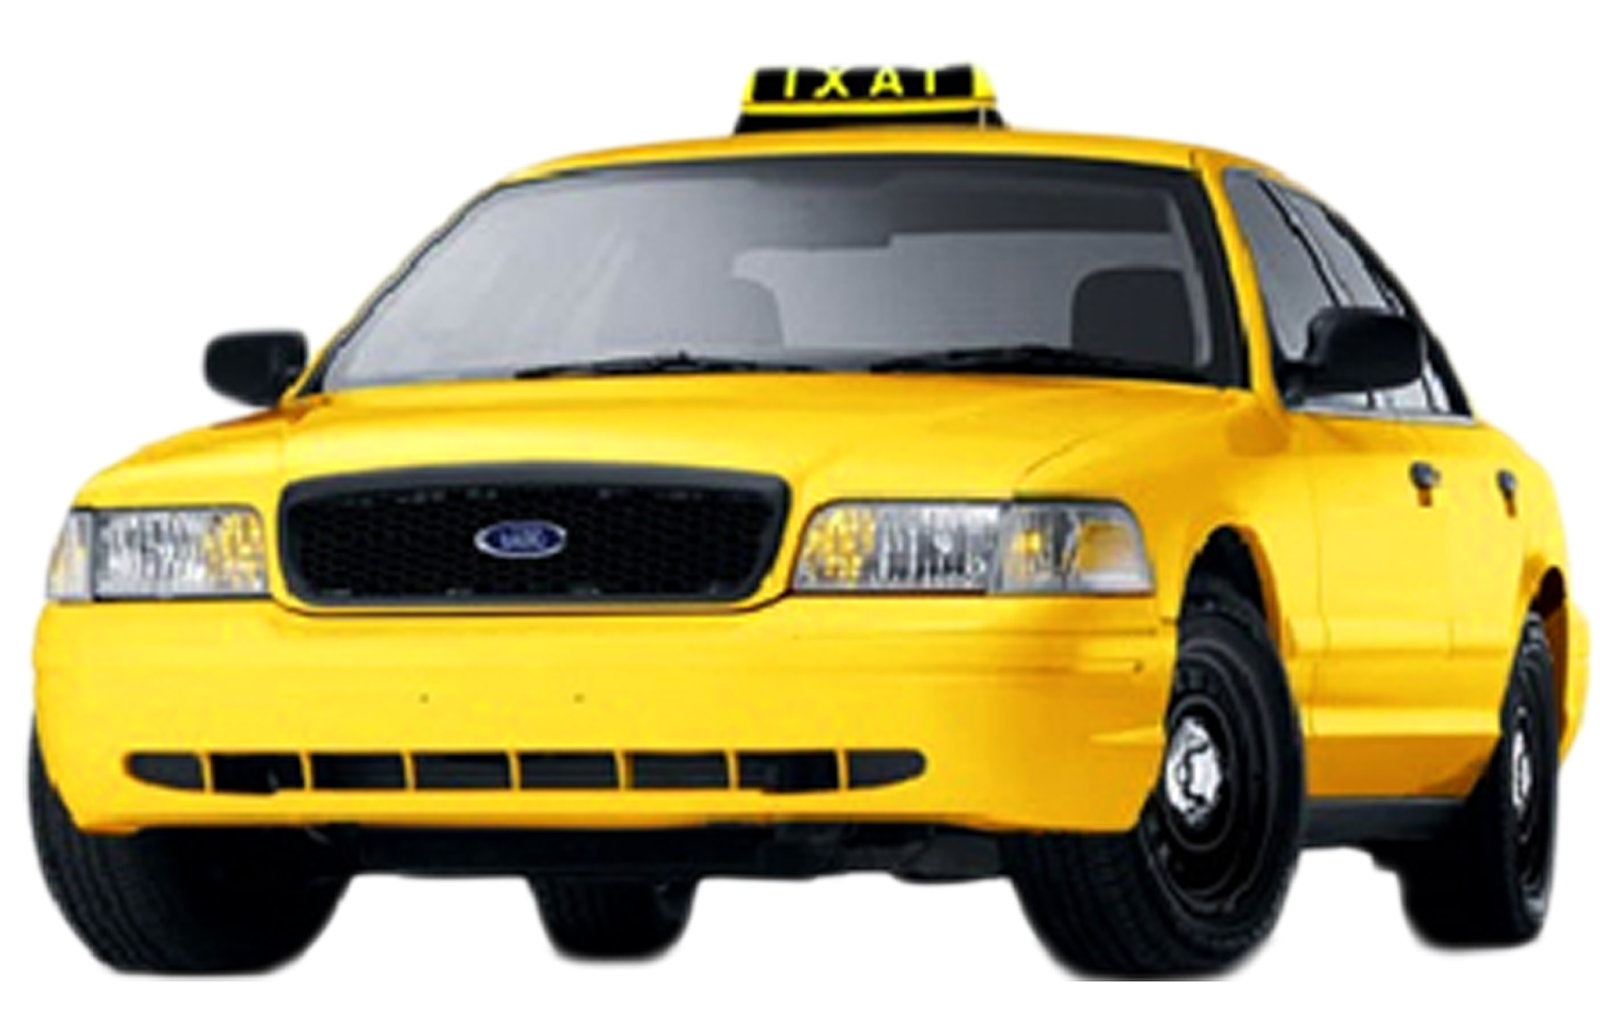 Taxi HD PNG